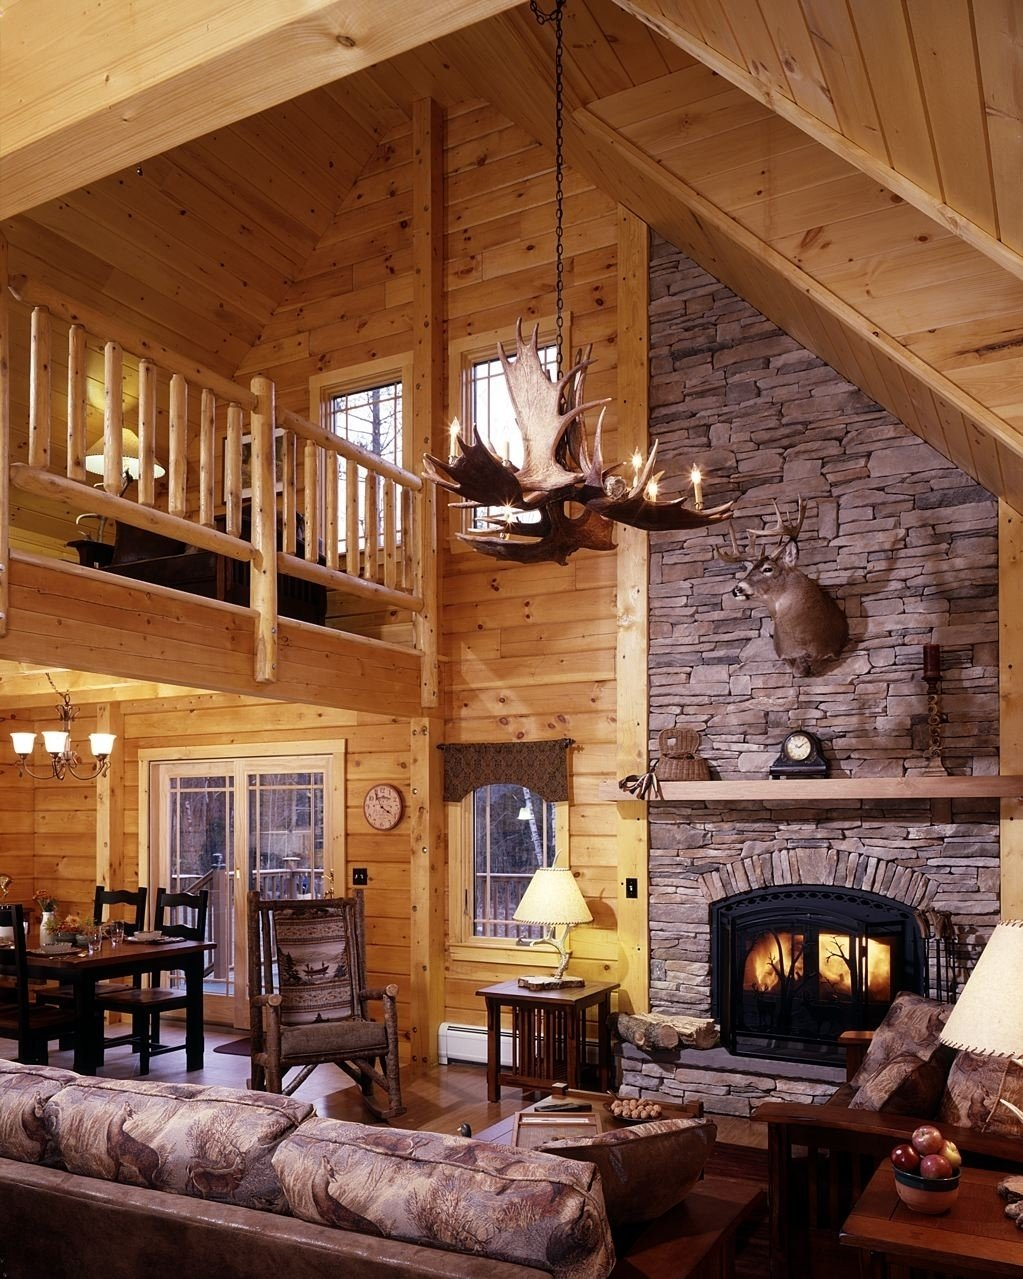 10 Most Popular Log Cabin Interior Design Ideas image result for beautiful abstract log cabin taiga eco house 2020